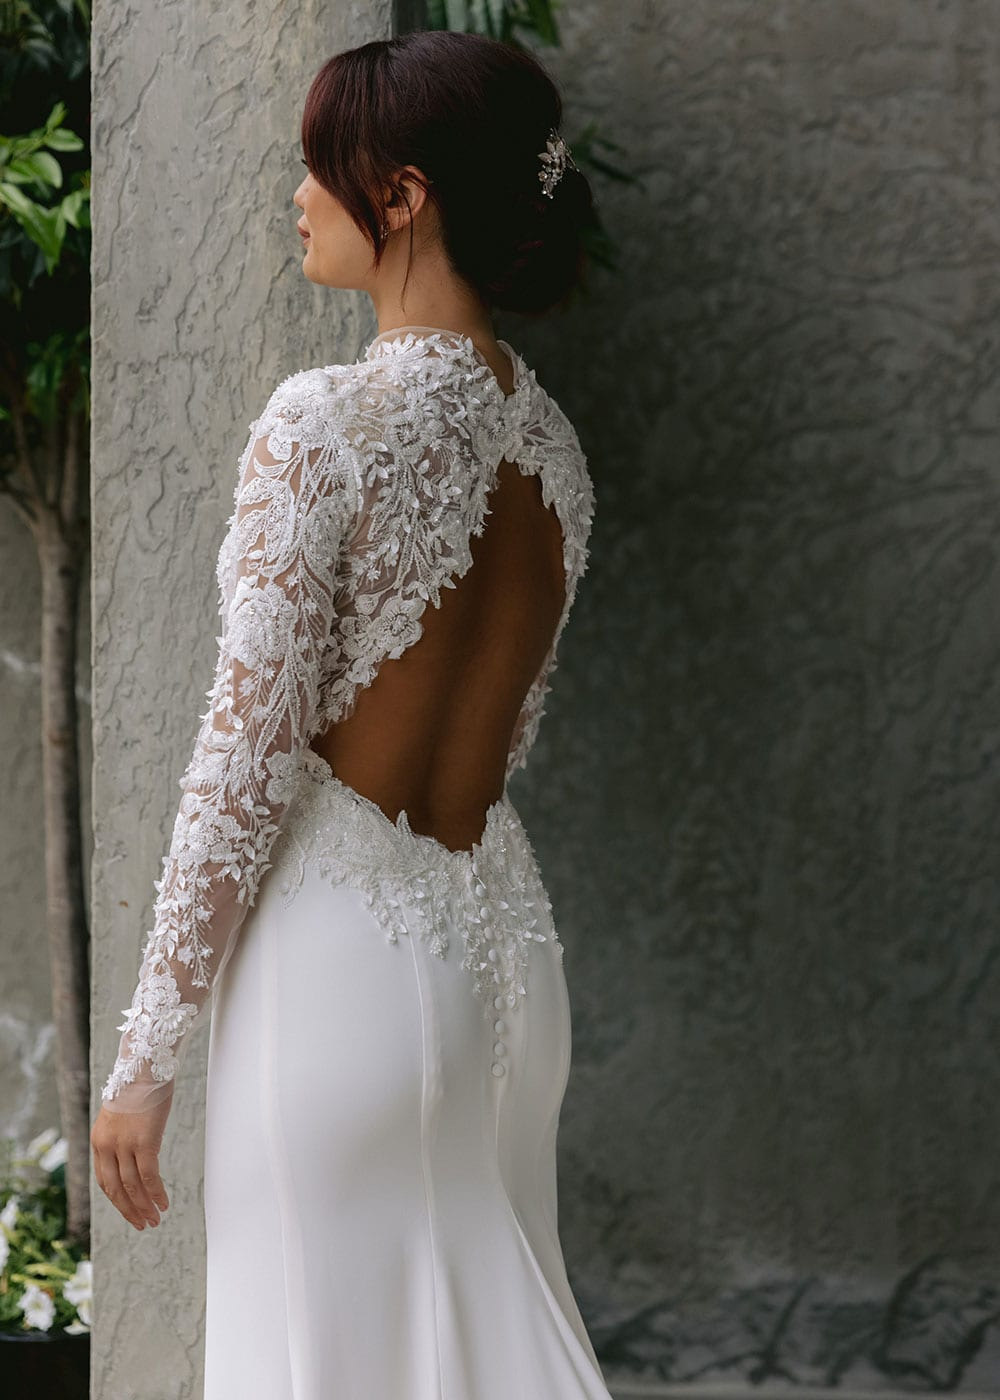 Moana Wedding gown from Vinka Design - Spectacular wedding dress perfect for the modern bride who still wants a classic spark! 3D lace embroidery complemented by a high neckline, fitted sleeves, and stunning low back into a flare train. Model wearing gown showing low back and lace detail.